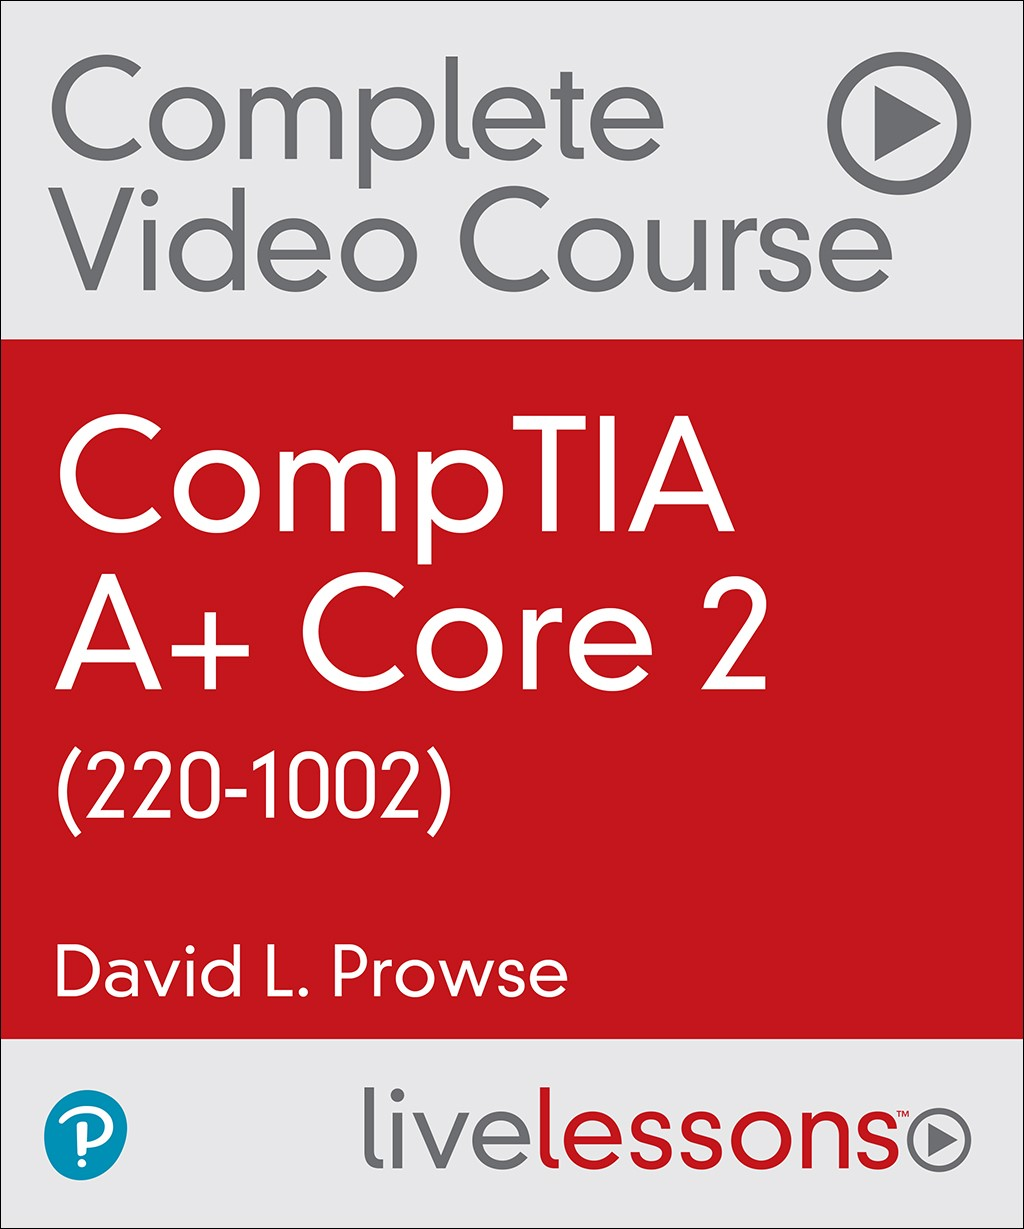 CompTIA A+ Core 2 (220-1002) Complete Video Course and Practice Test